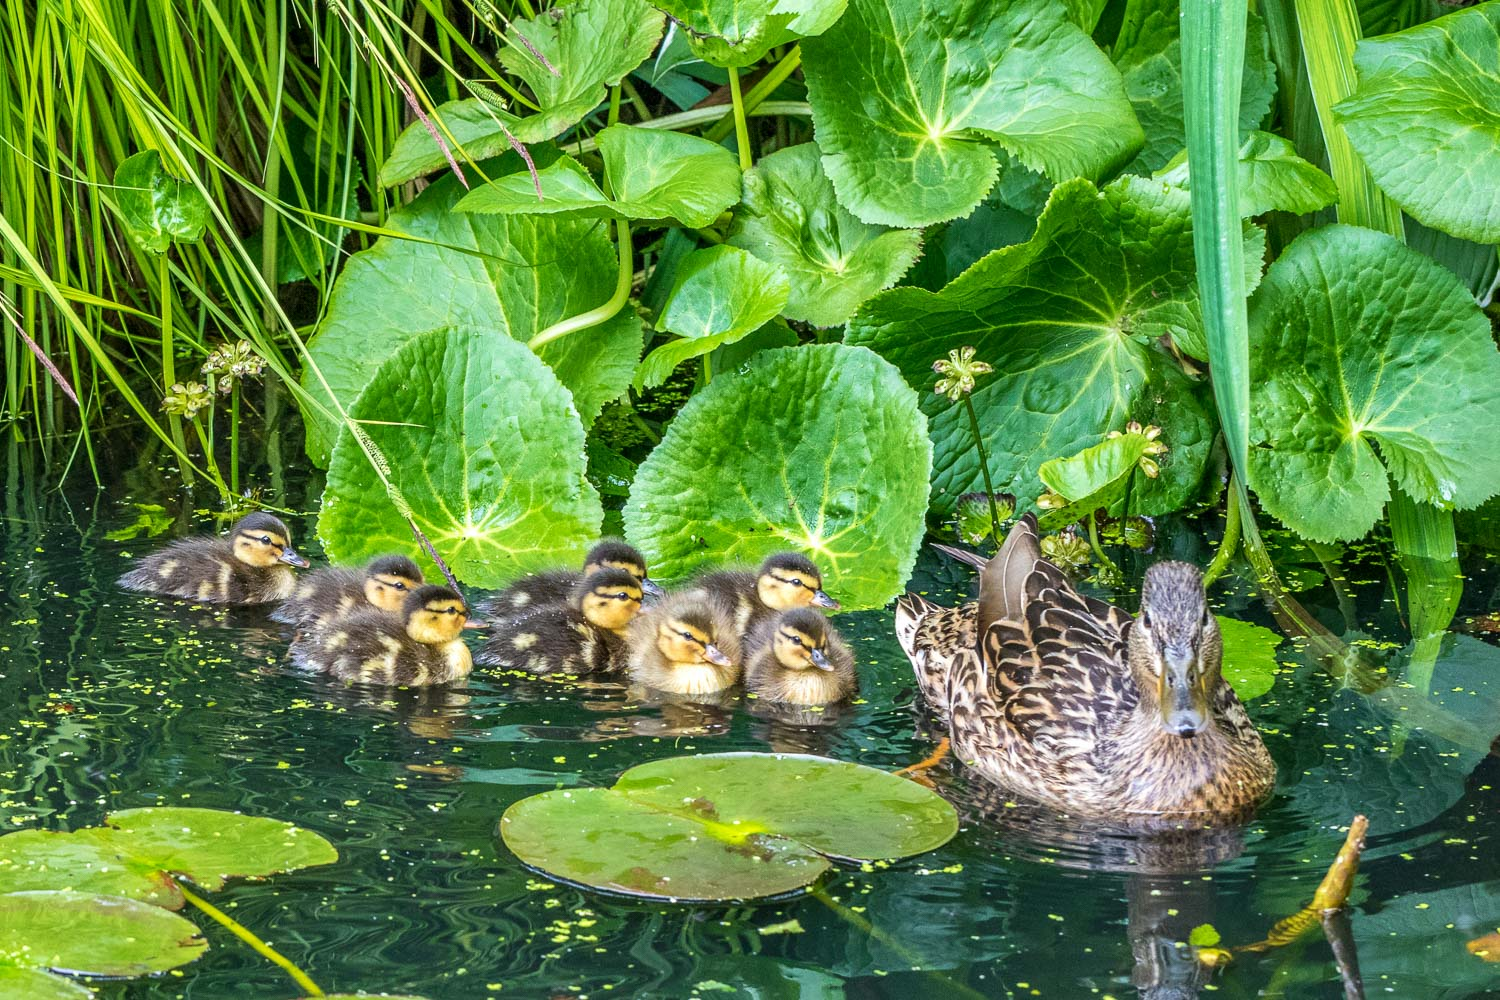 8 ducklings on our pond